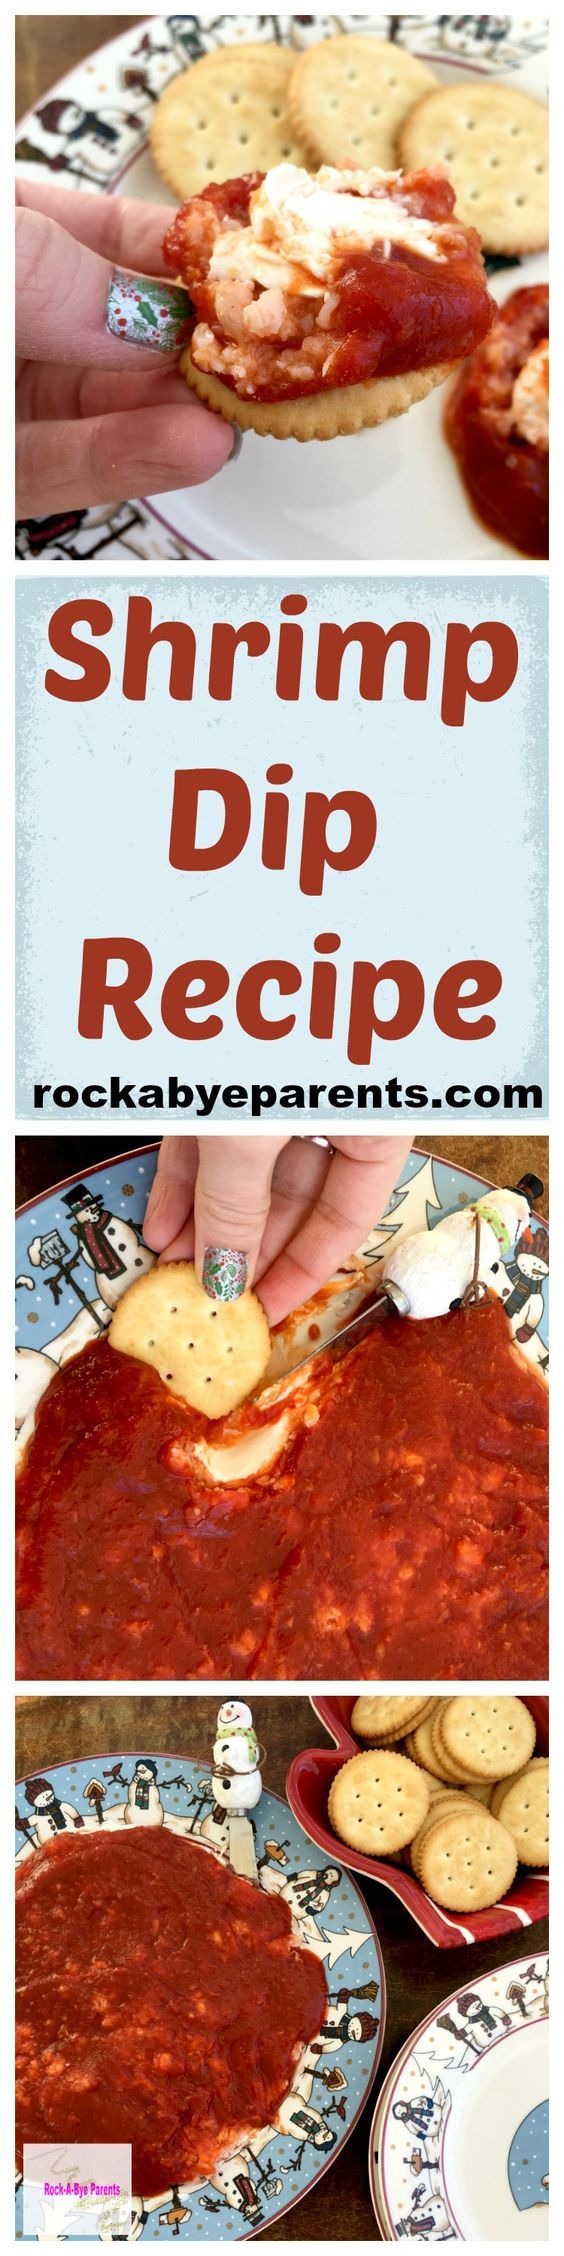 The Ultimate Pinterest Party, Week 131 Shrimp Dip Recipe: This easy dip appetizer recipe will take you no time at all to make and it is always a hit at parties!